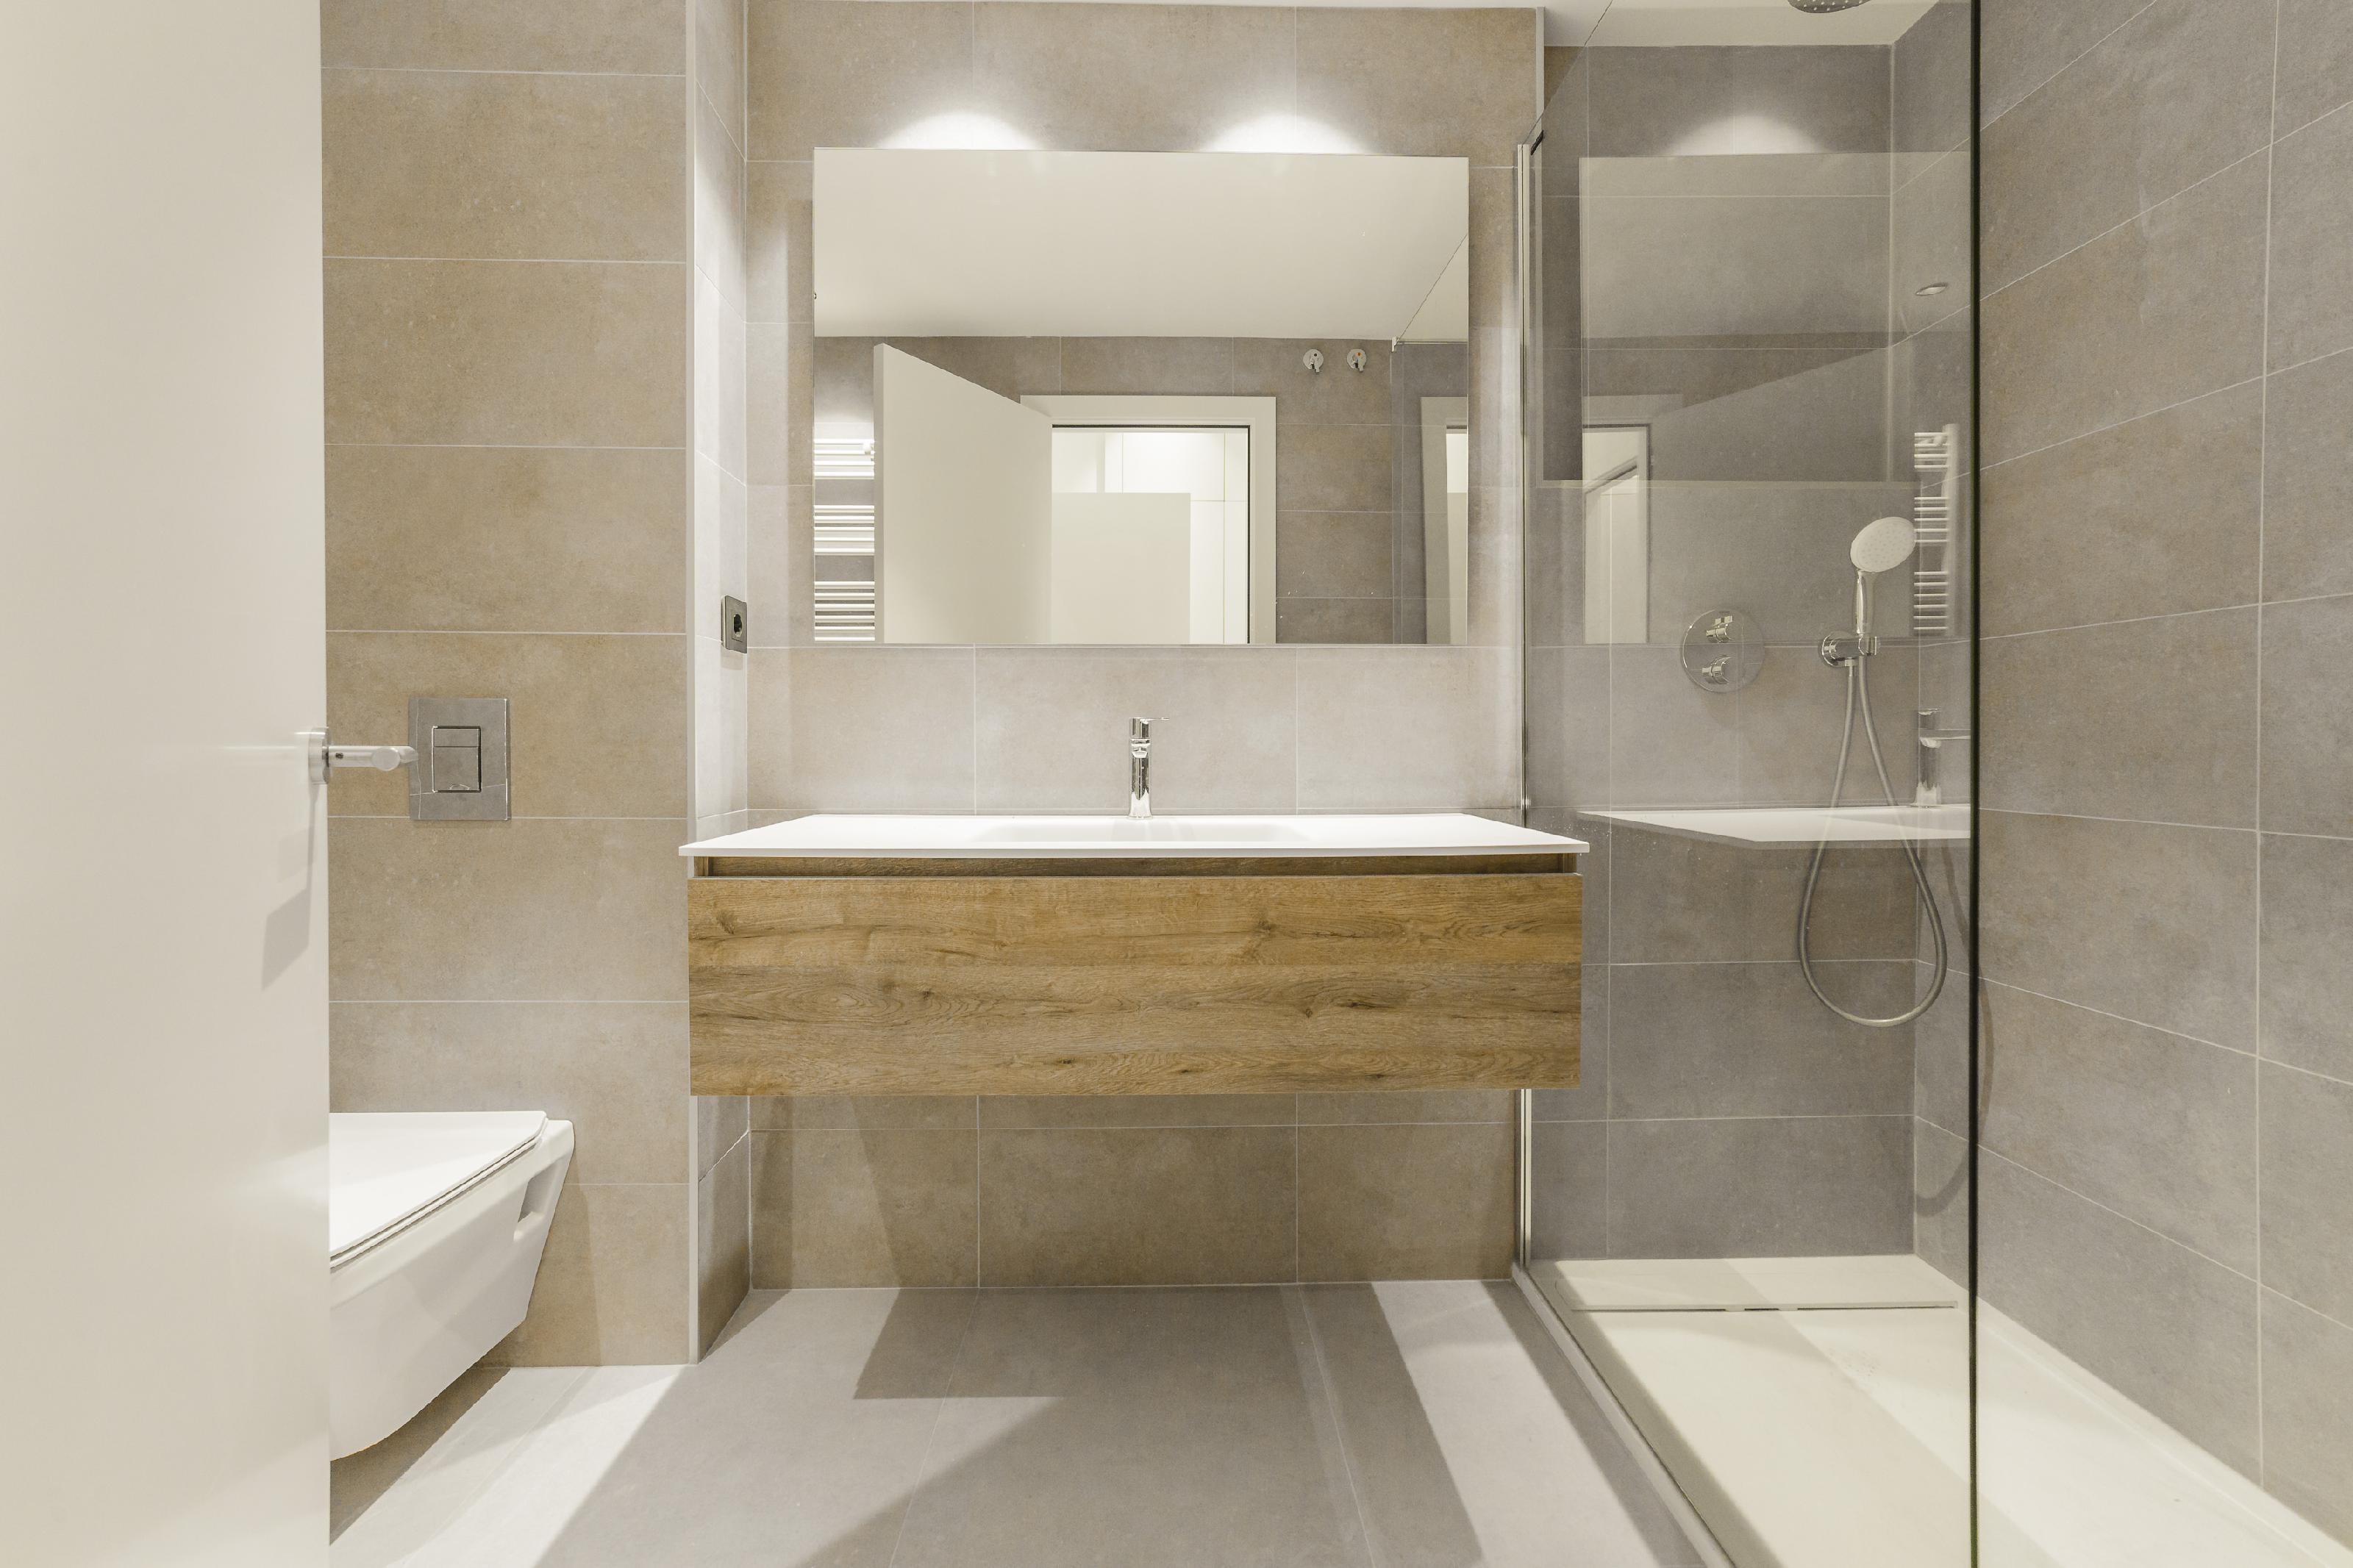 182474 Apartment for sale in Eixample, Old Left Eixample 19